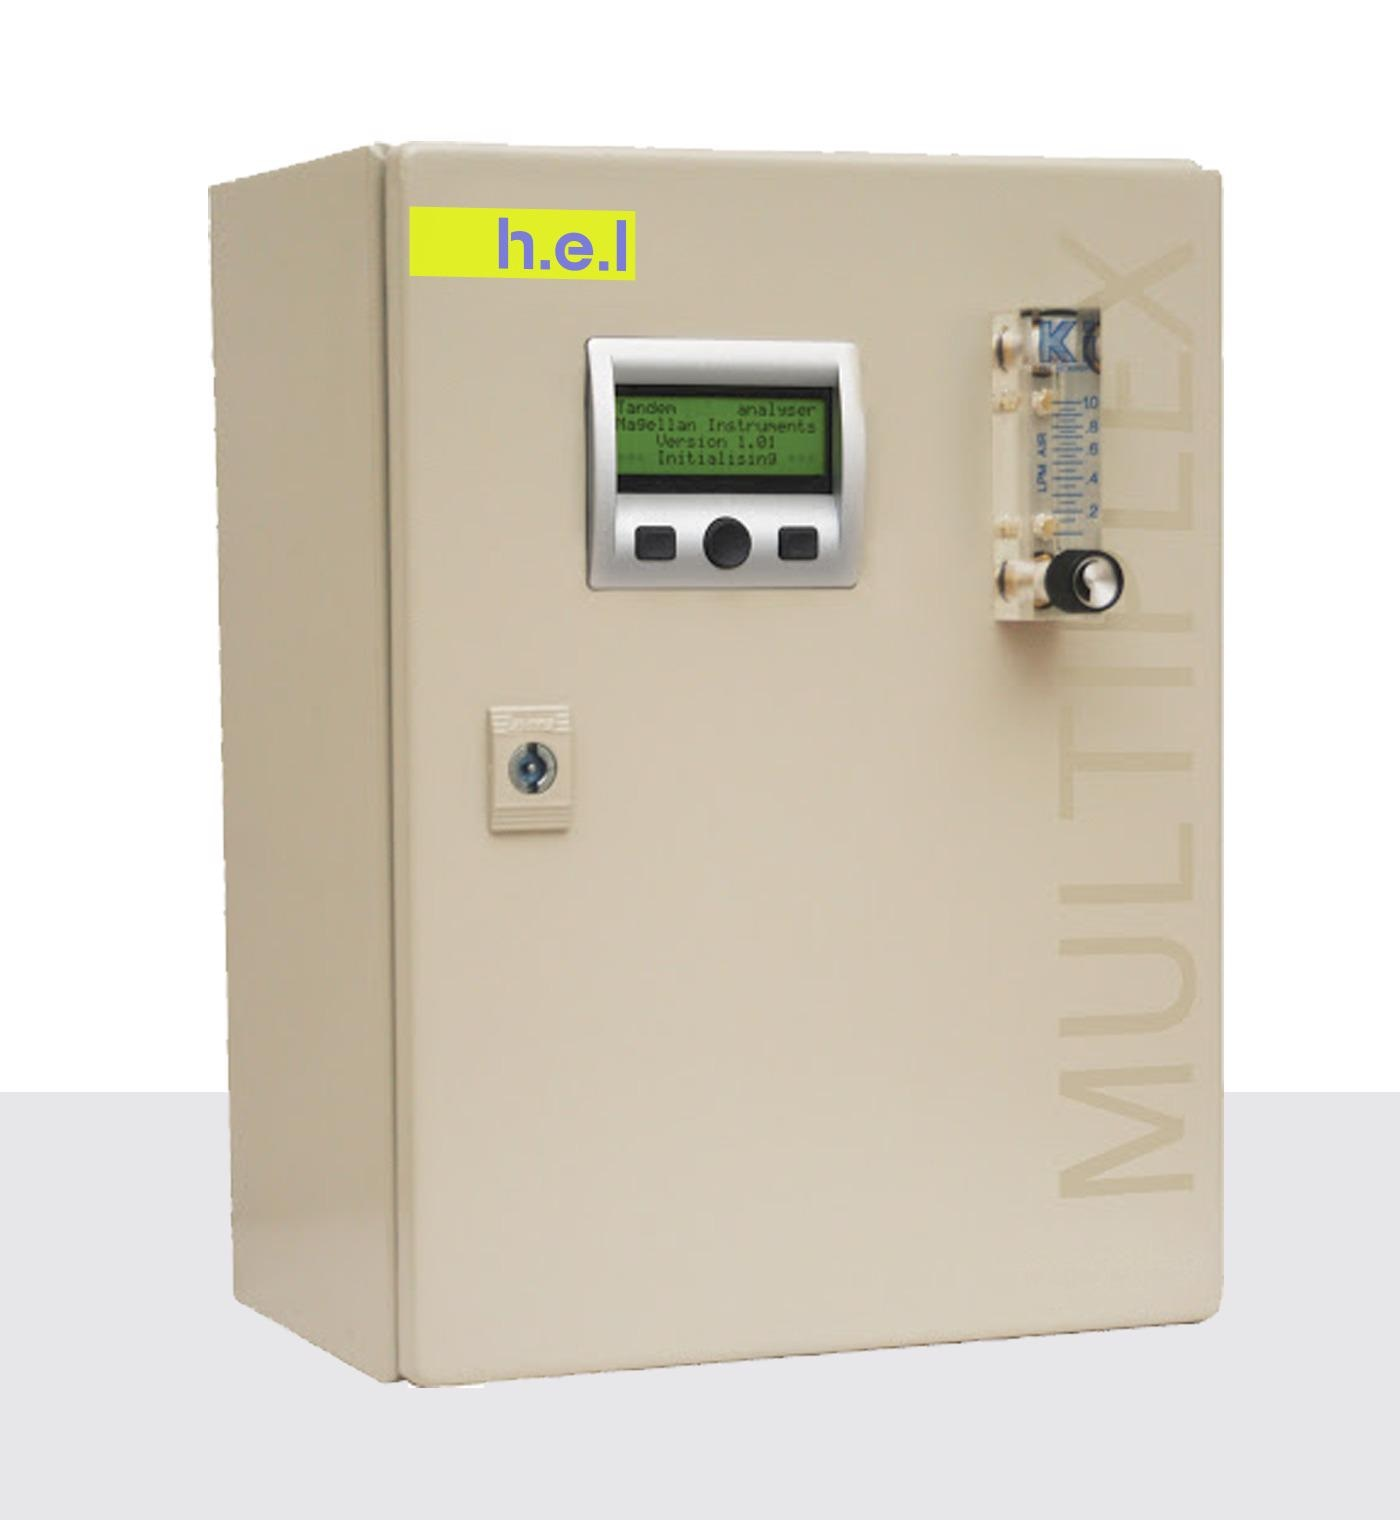 Tandem MULTI: A Multi-Line Off-Gas Analyzer